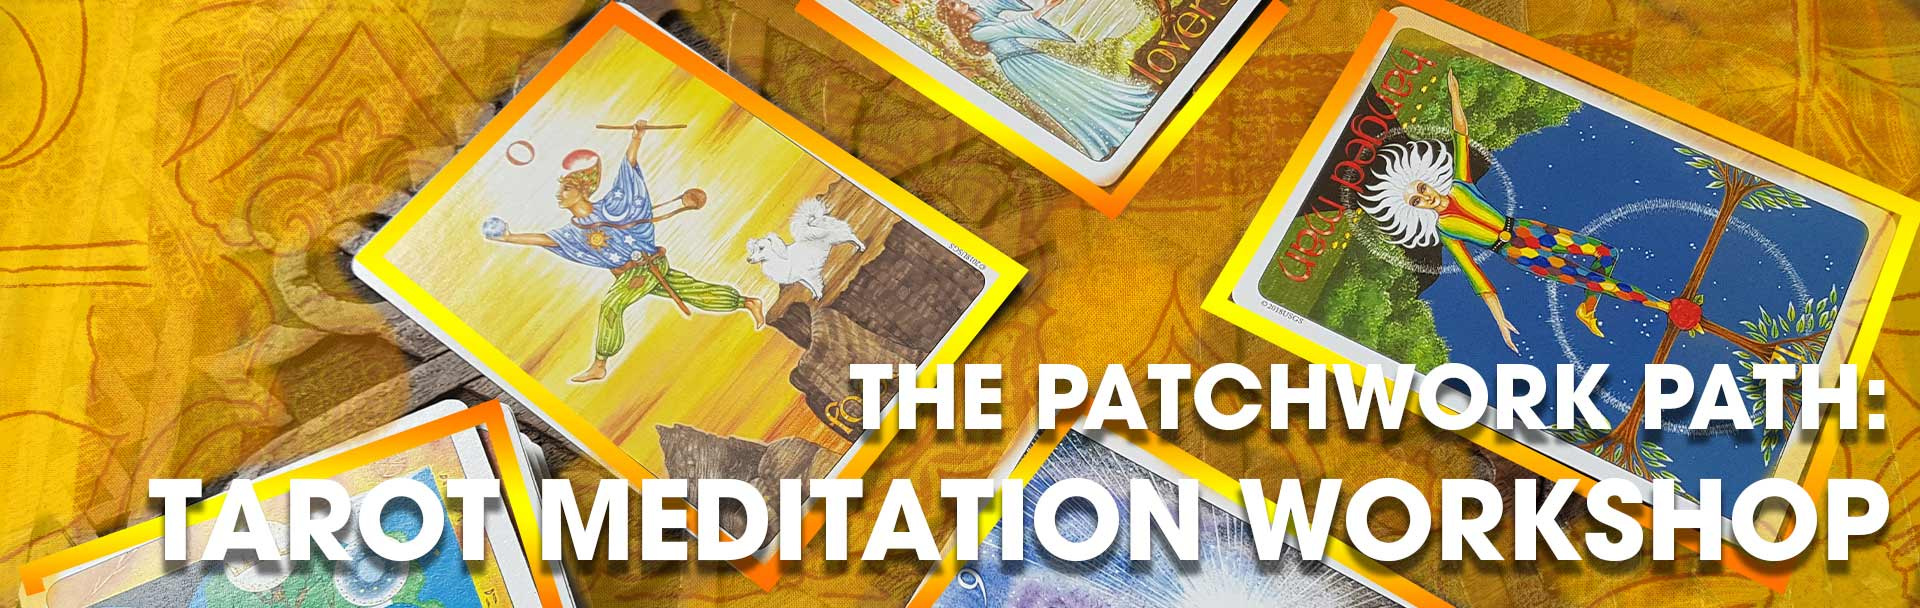 Chloe Deas leads the tarot meditation workshop at the sir arthur conan doyle centre